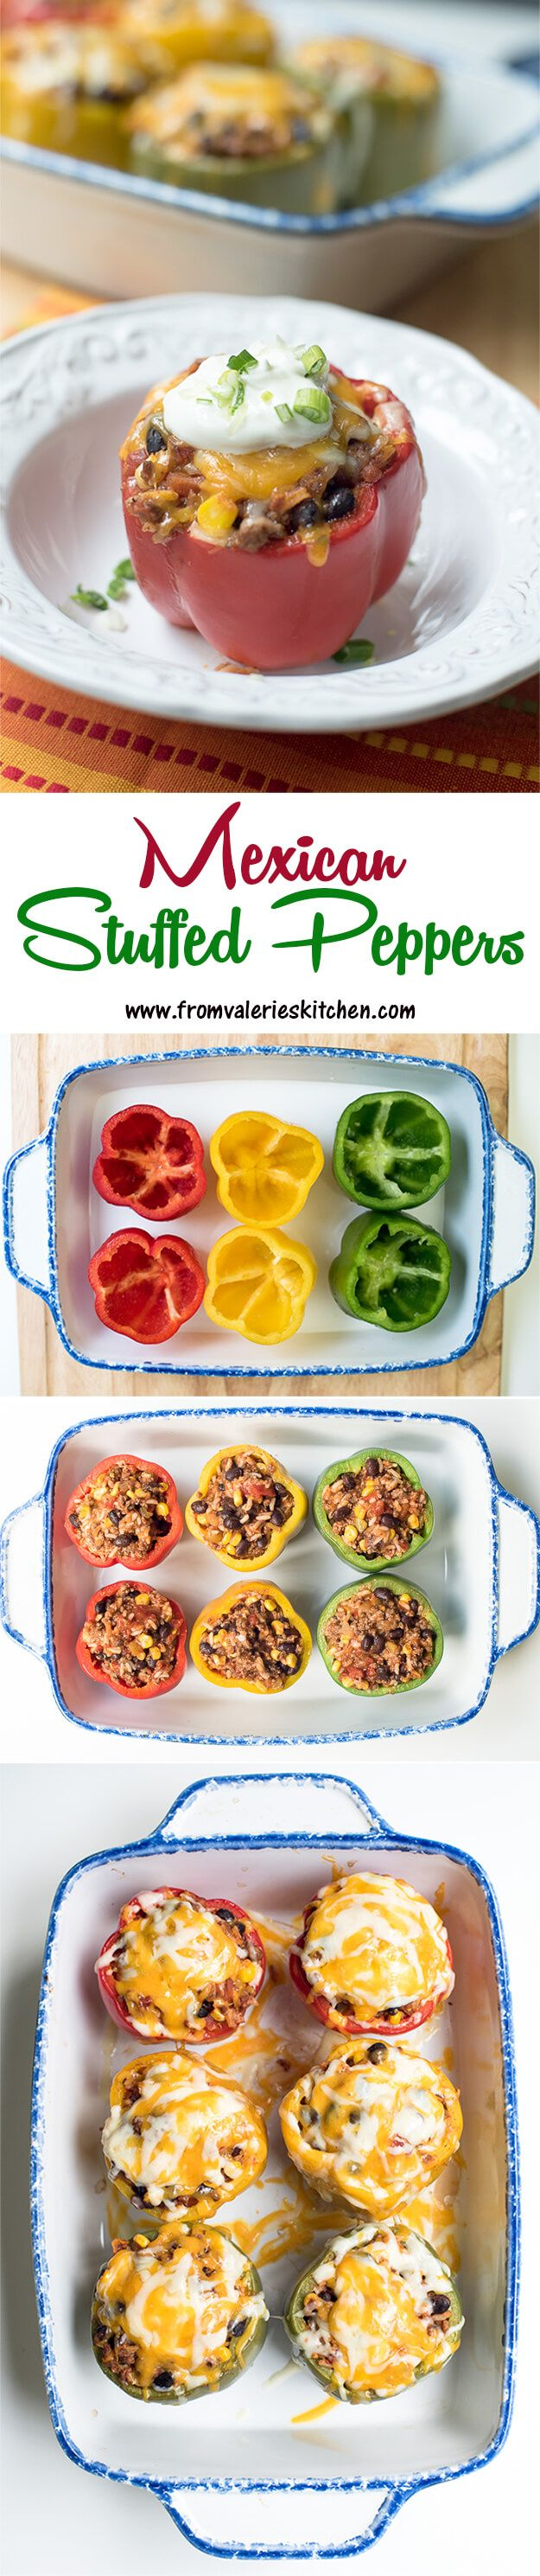 A Mexican twist on stuffed bell peppers. This filling is insanely good! ~ http://www.fromvalerieskitchen.com